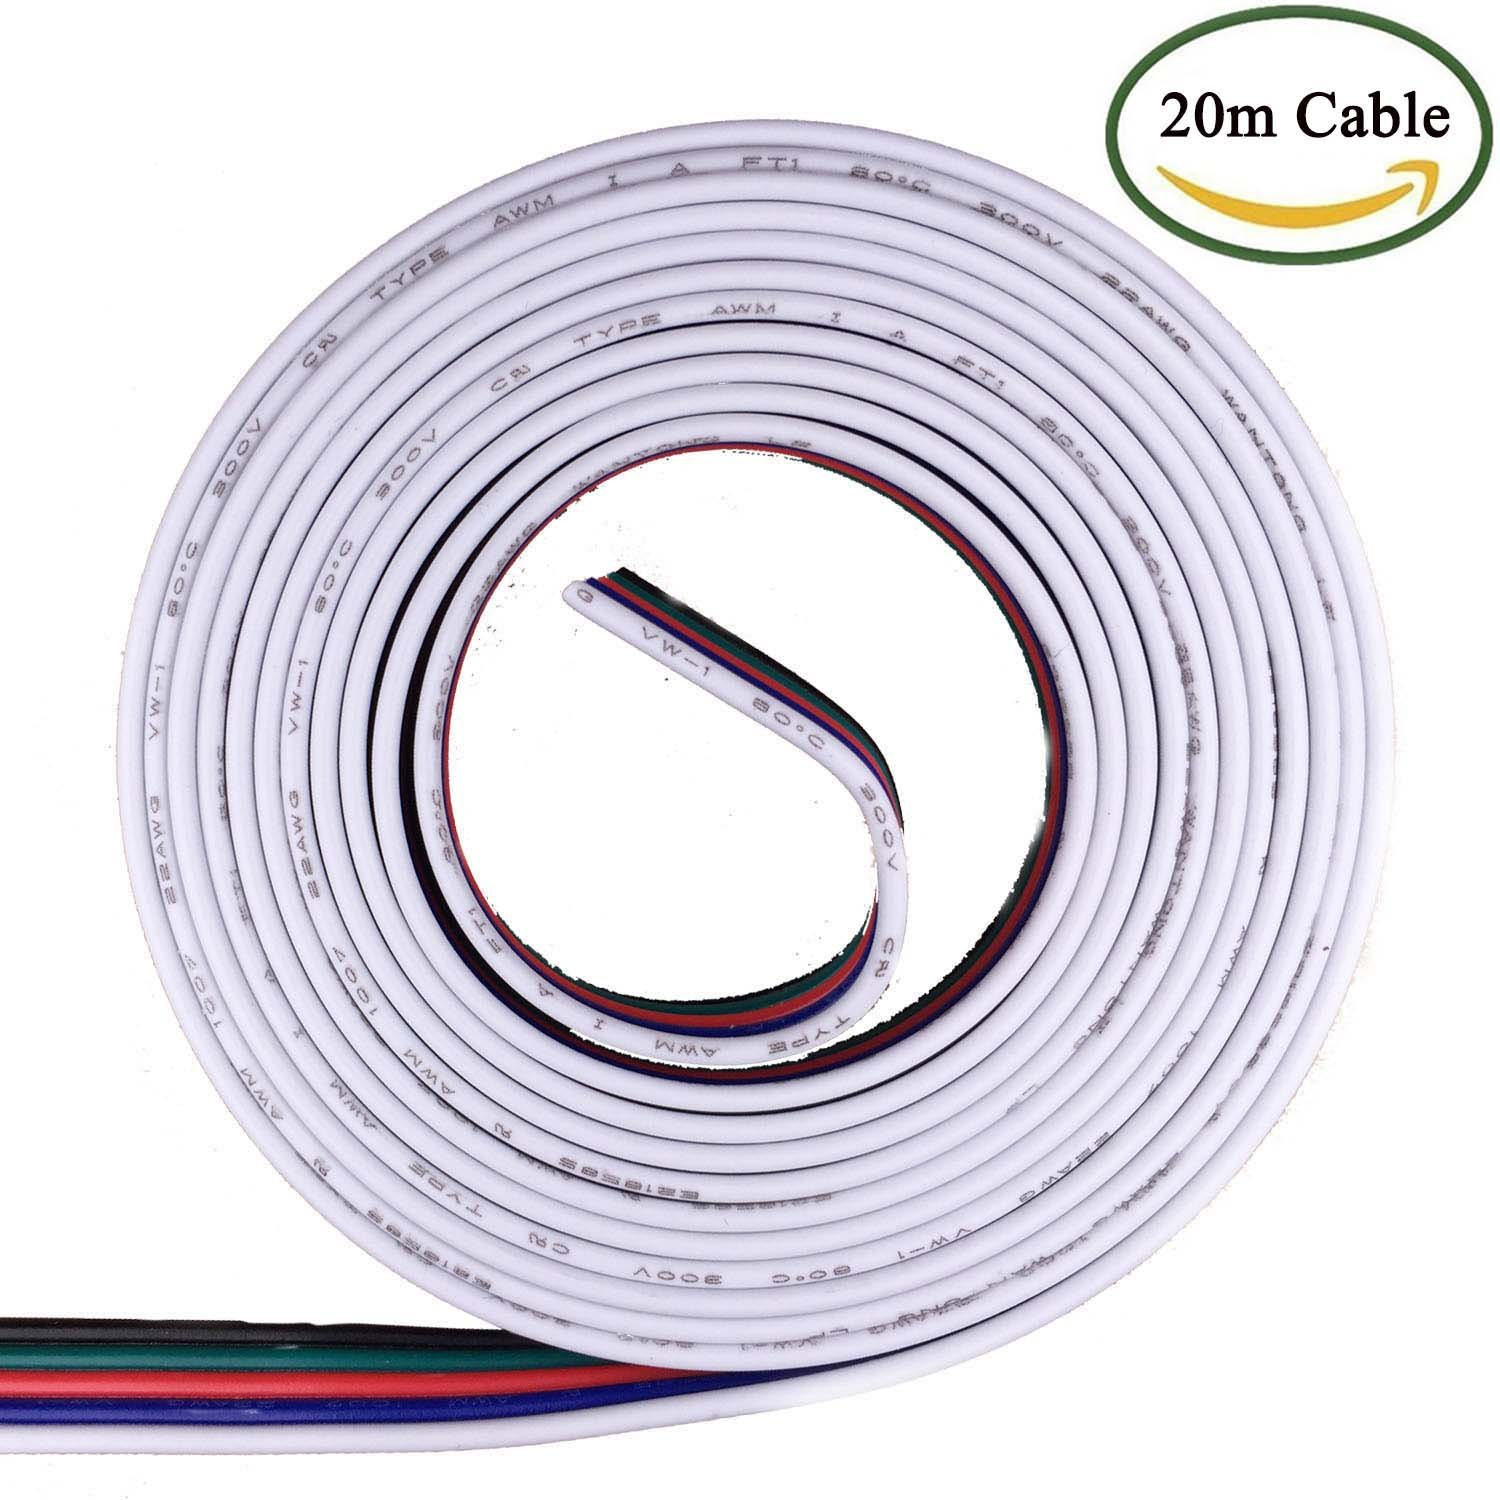 Kabenjee RGBW 5pin LED Strips Light 20m RGBW LED Strip Extension Cable Connector,5 Way Flat Ribbon Cable for 5pin LED Tape Light,Connector Wire for Osram LED Strip Ribbon or 3D Printer(Easy to split)